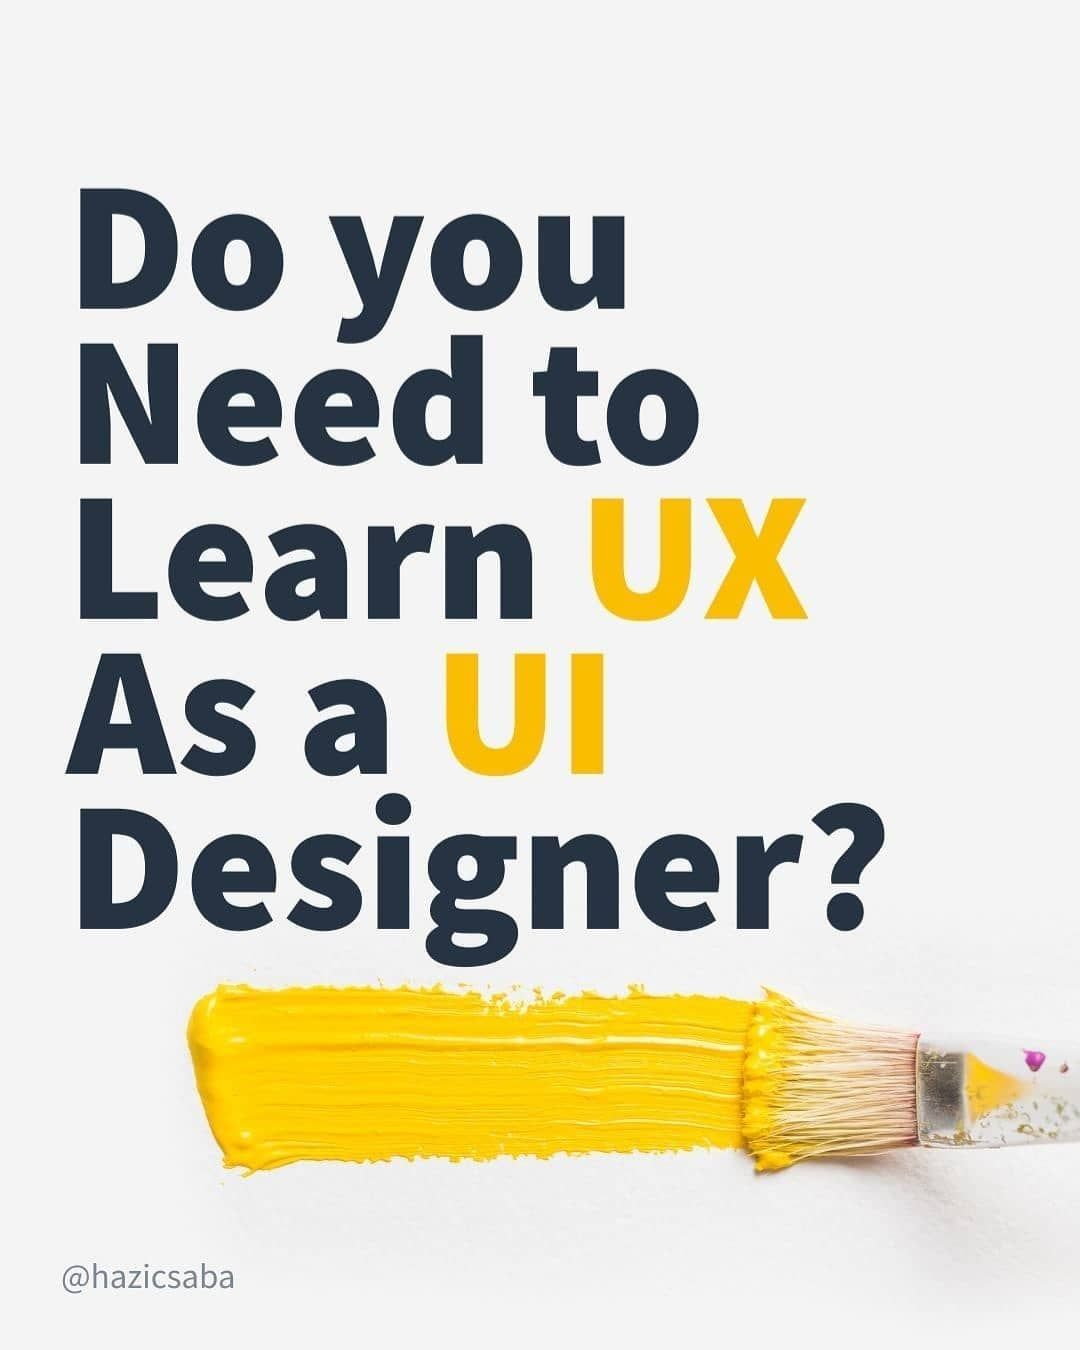 Do you need to learn ux as a ui designer